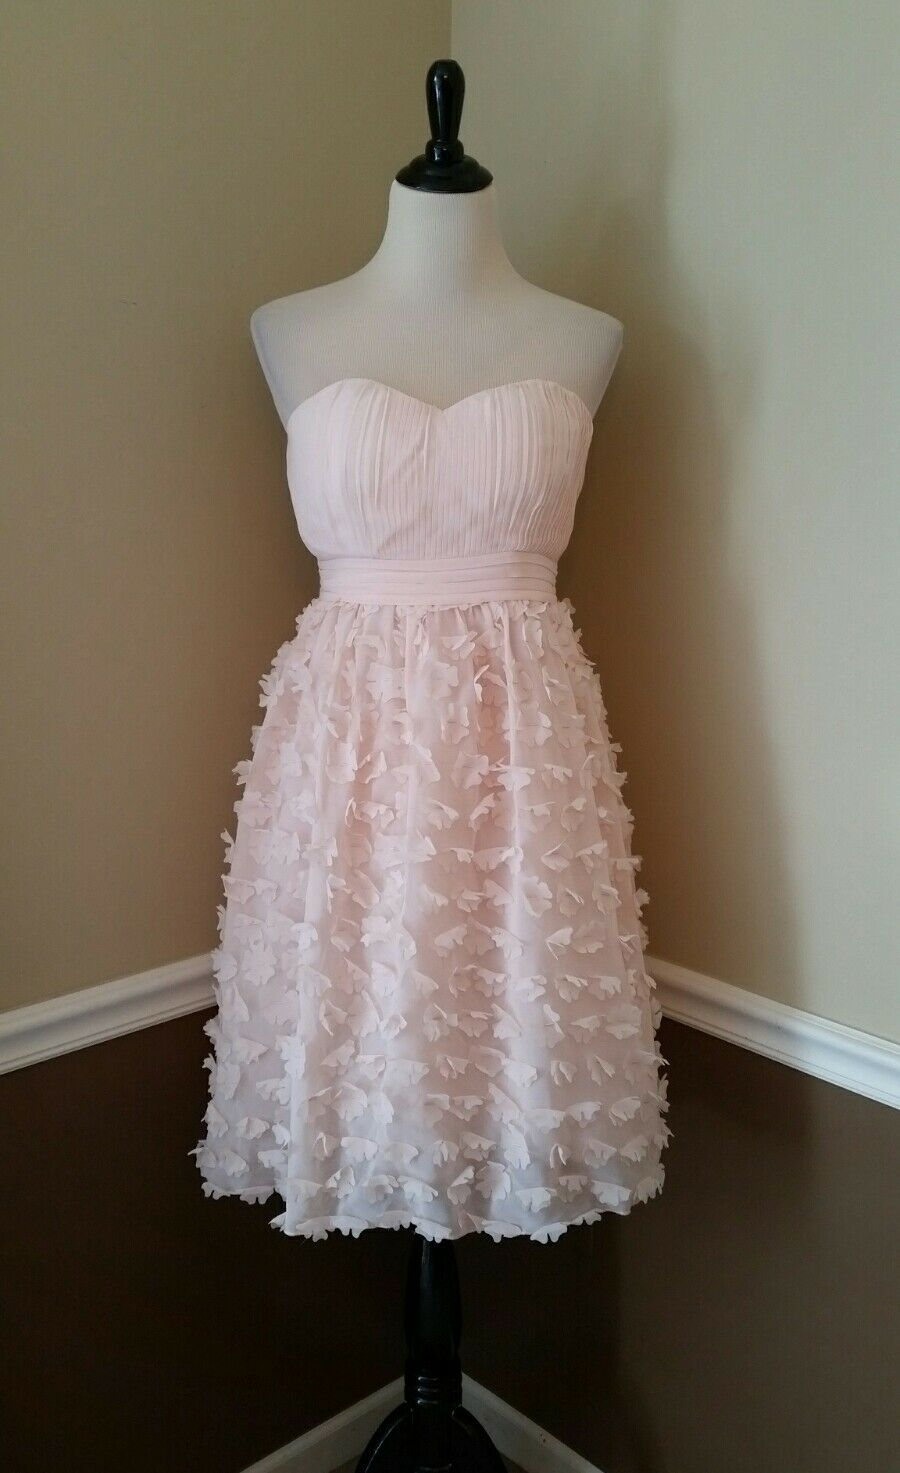 Modcloth Dress 4 Pale Rosa Strapless Formal Flower Appliques Fit Flare Delicacy